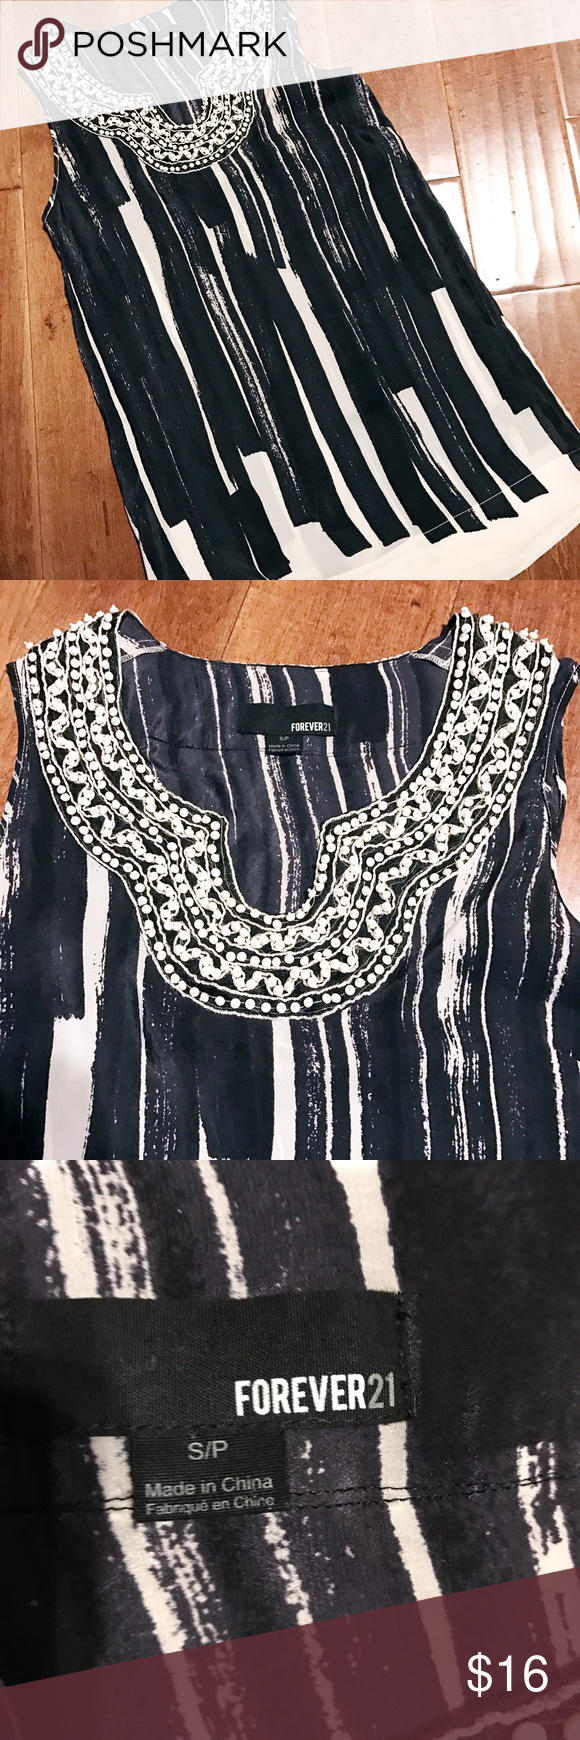 F21 Silk Beaded Tank 100% Silk Forever 21 beaded tank. Navy blue and white, in great condition. Forever 21 Tops Tank Tops